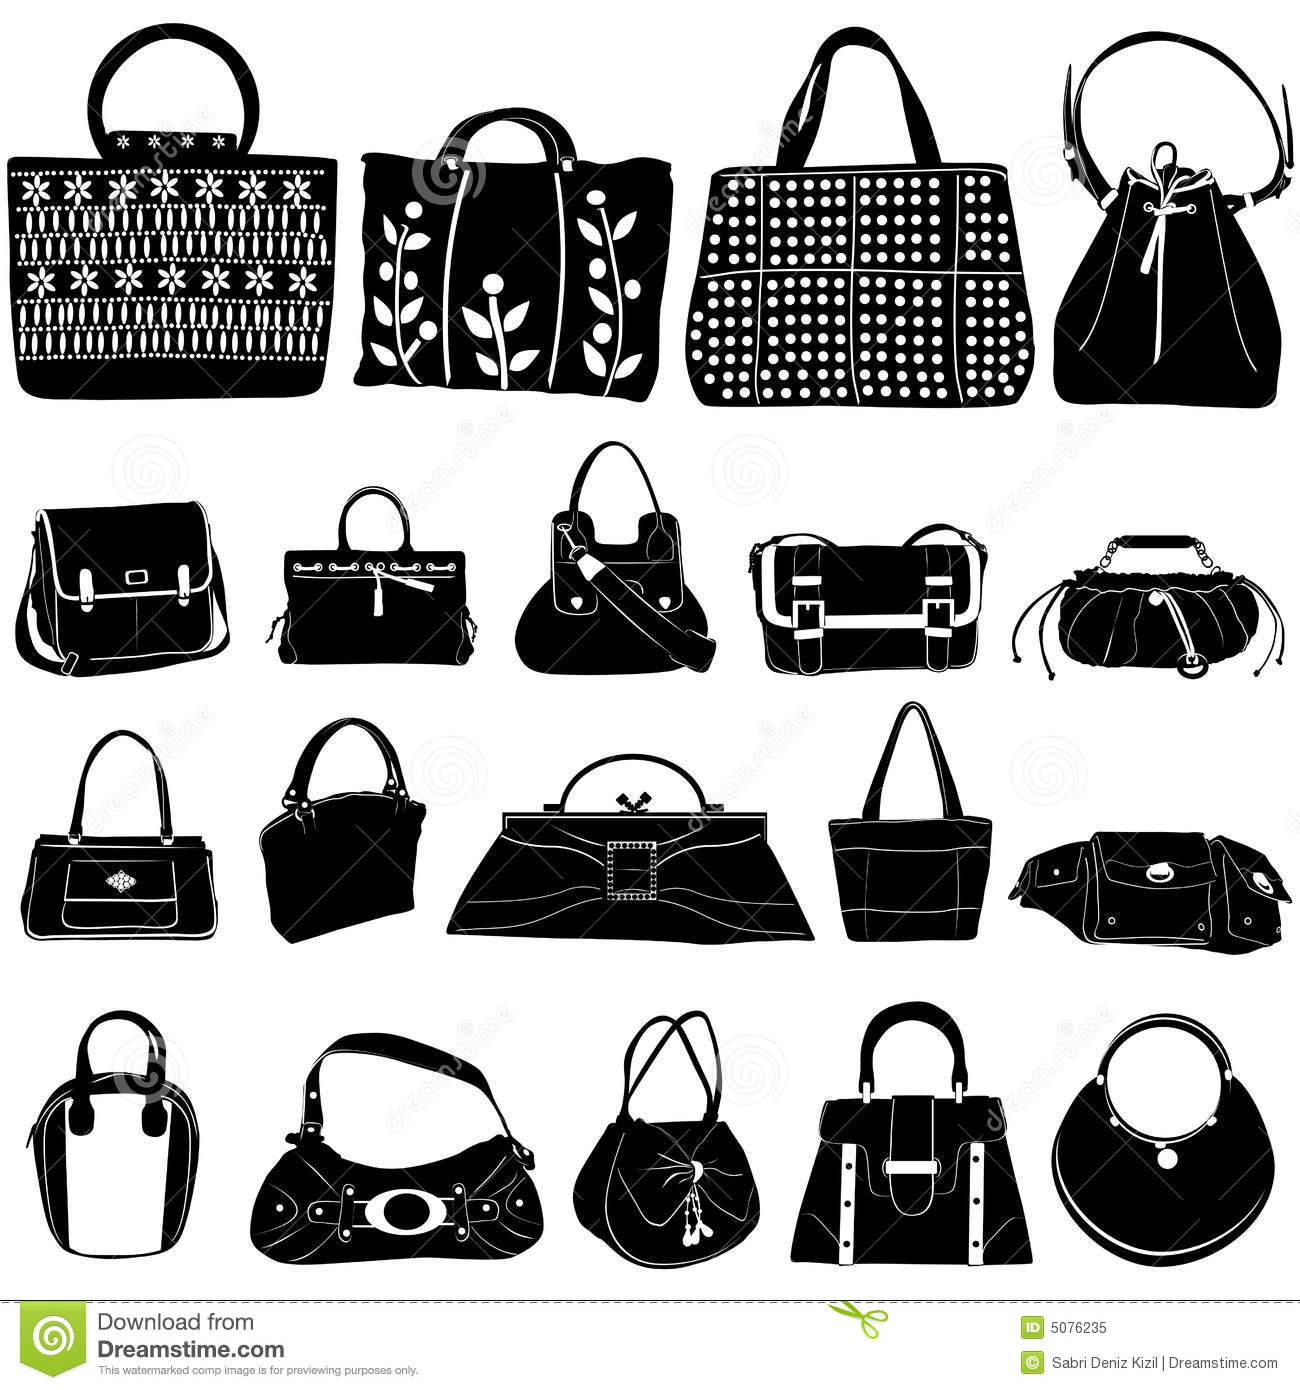 Fashion bag vector